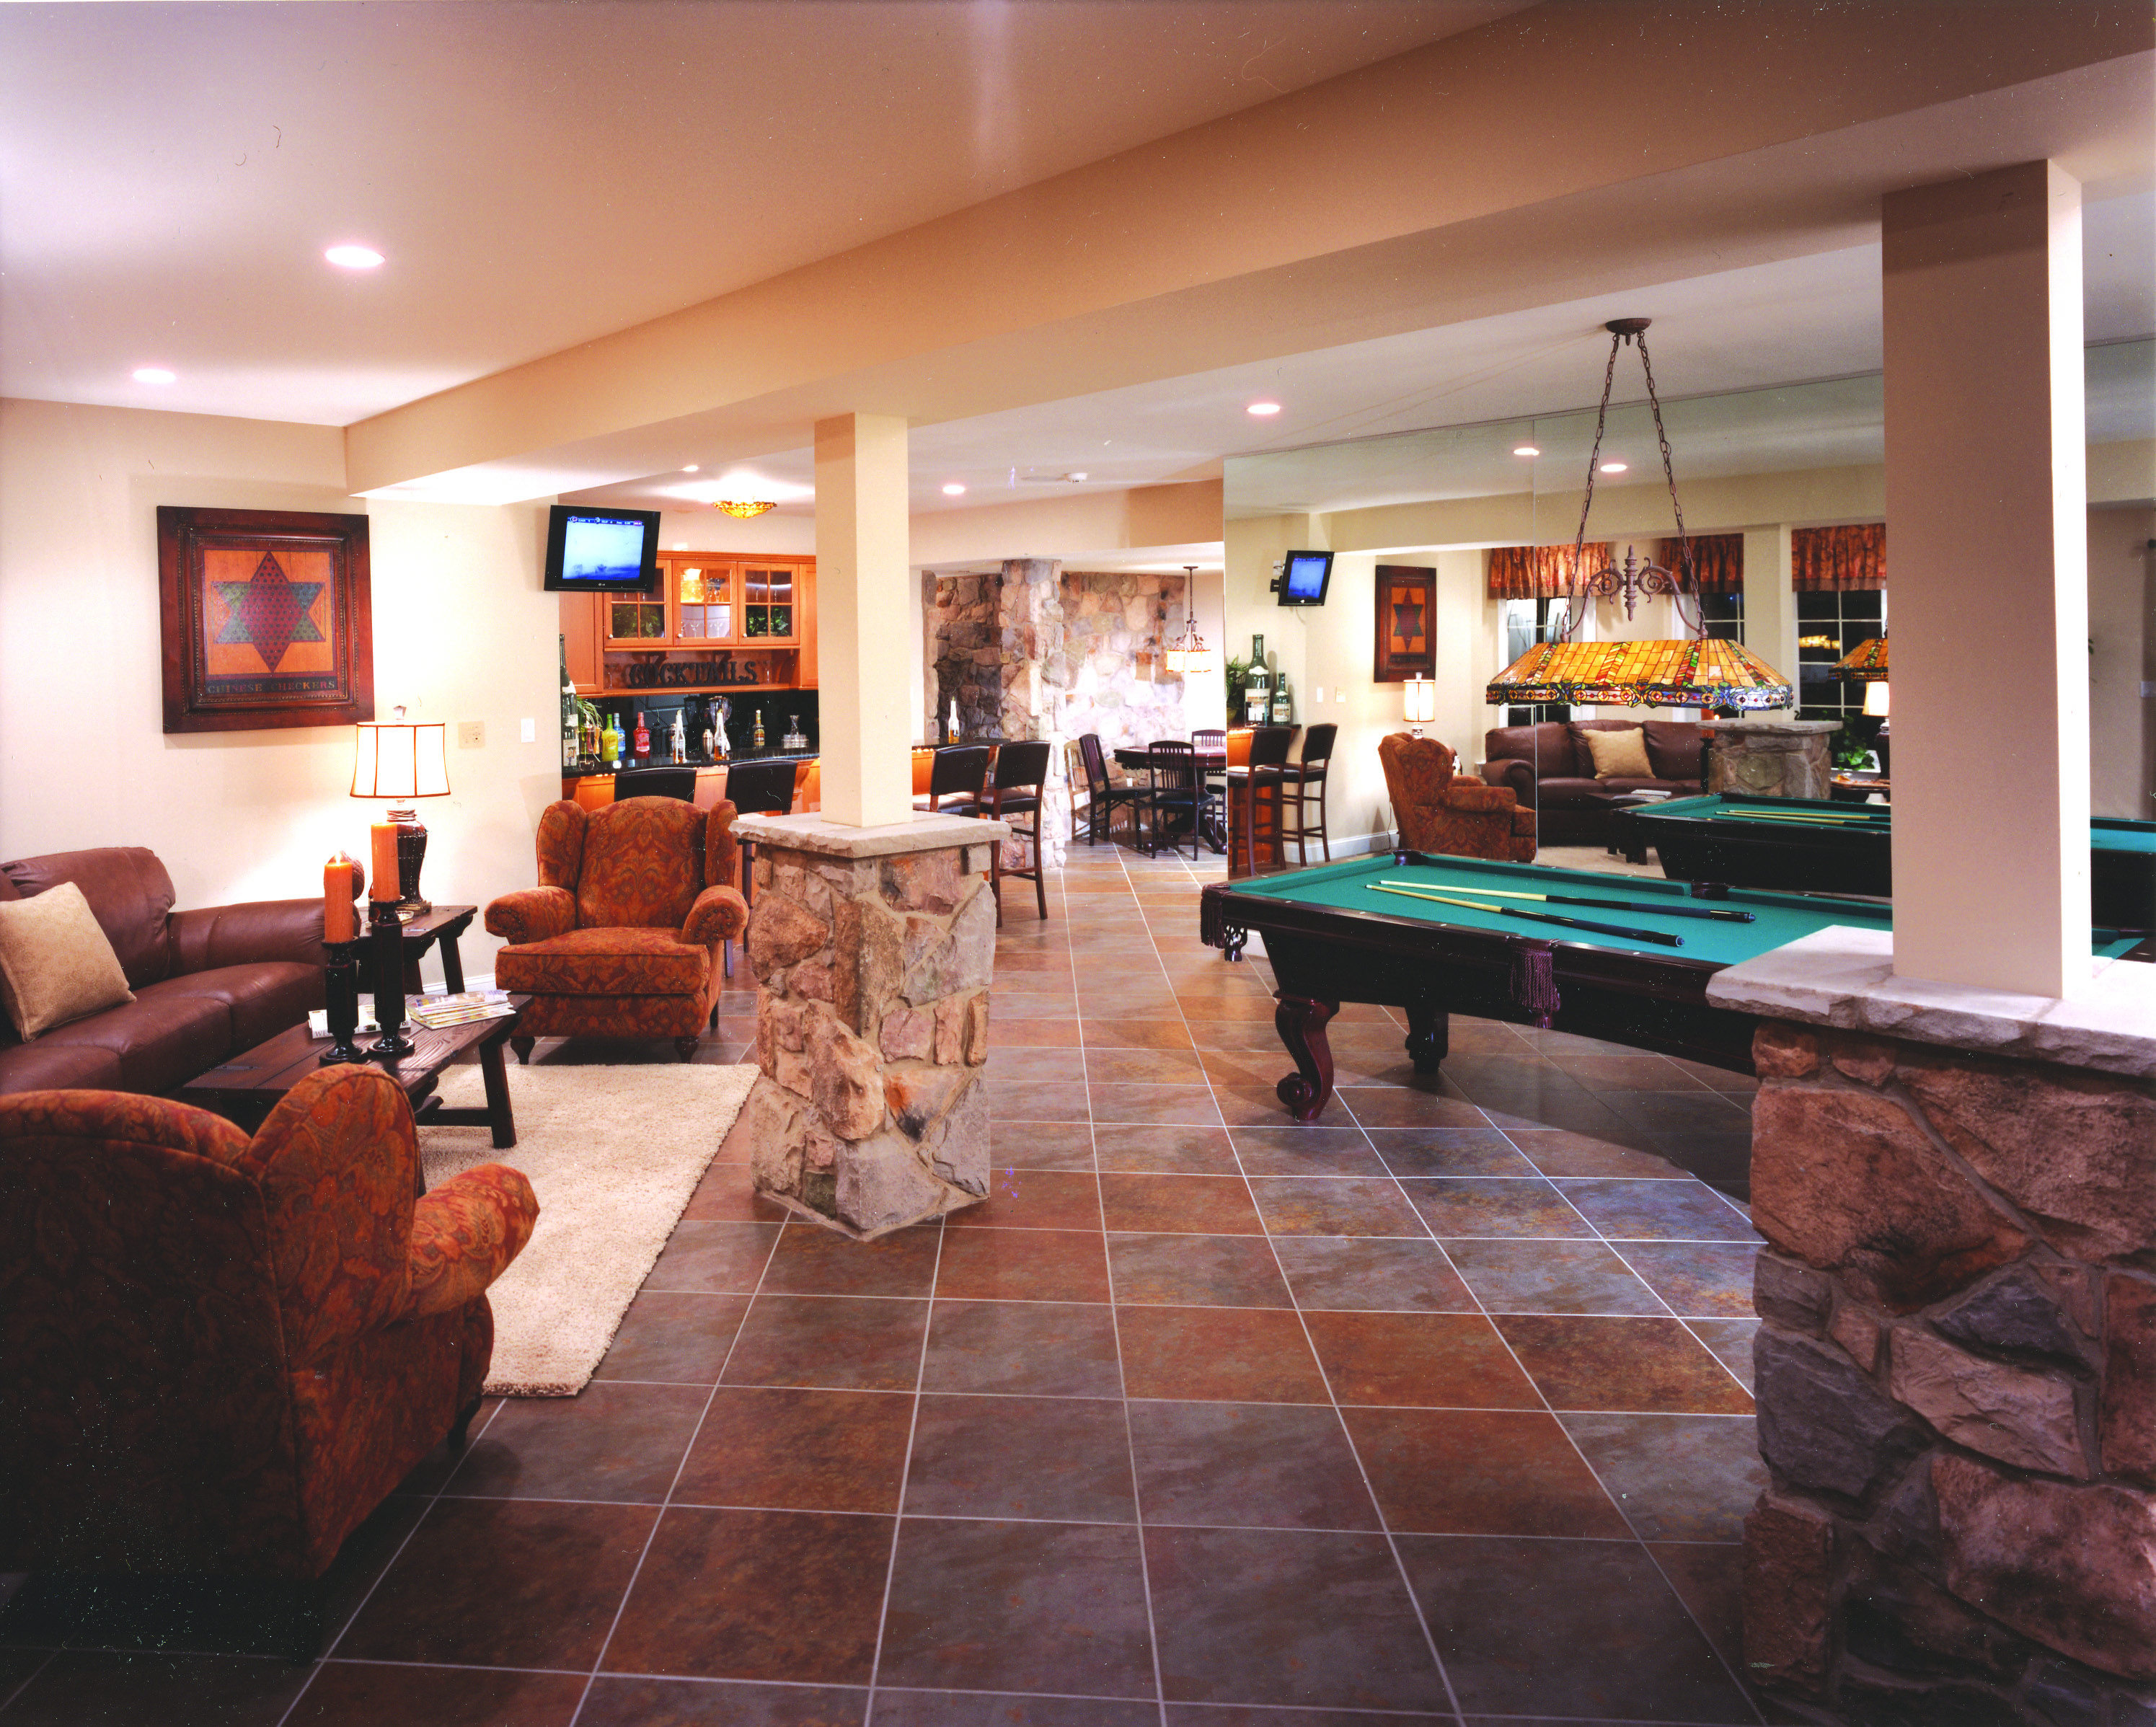 Amazing Layout For This Multi Purpose Basement Recreation Room, Living Room,